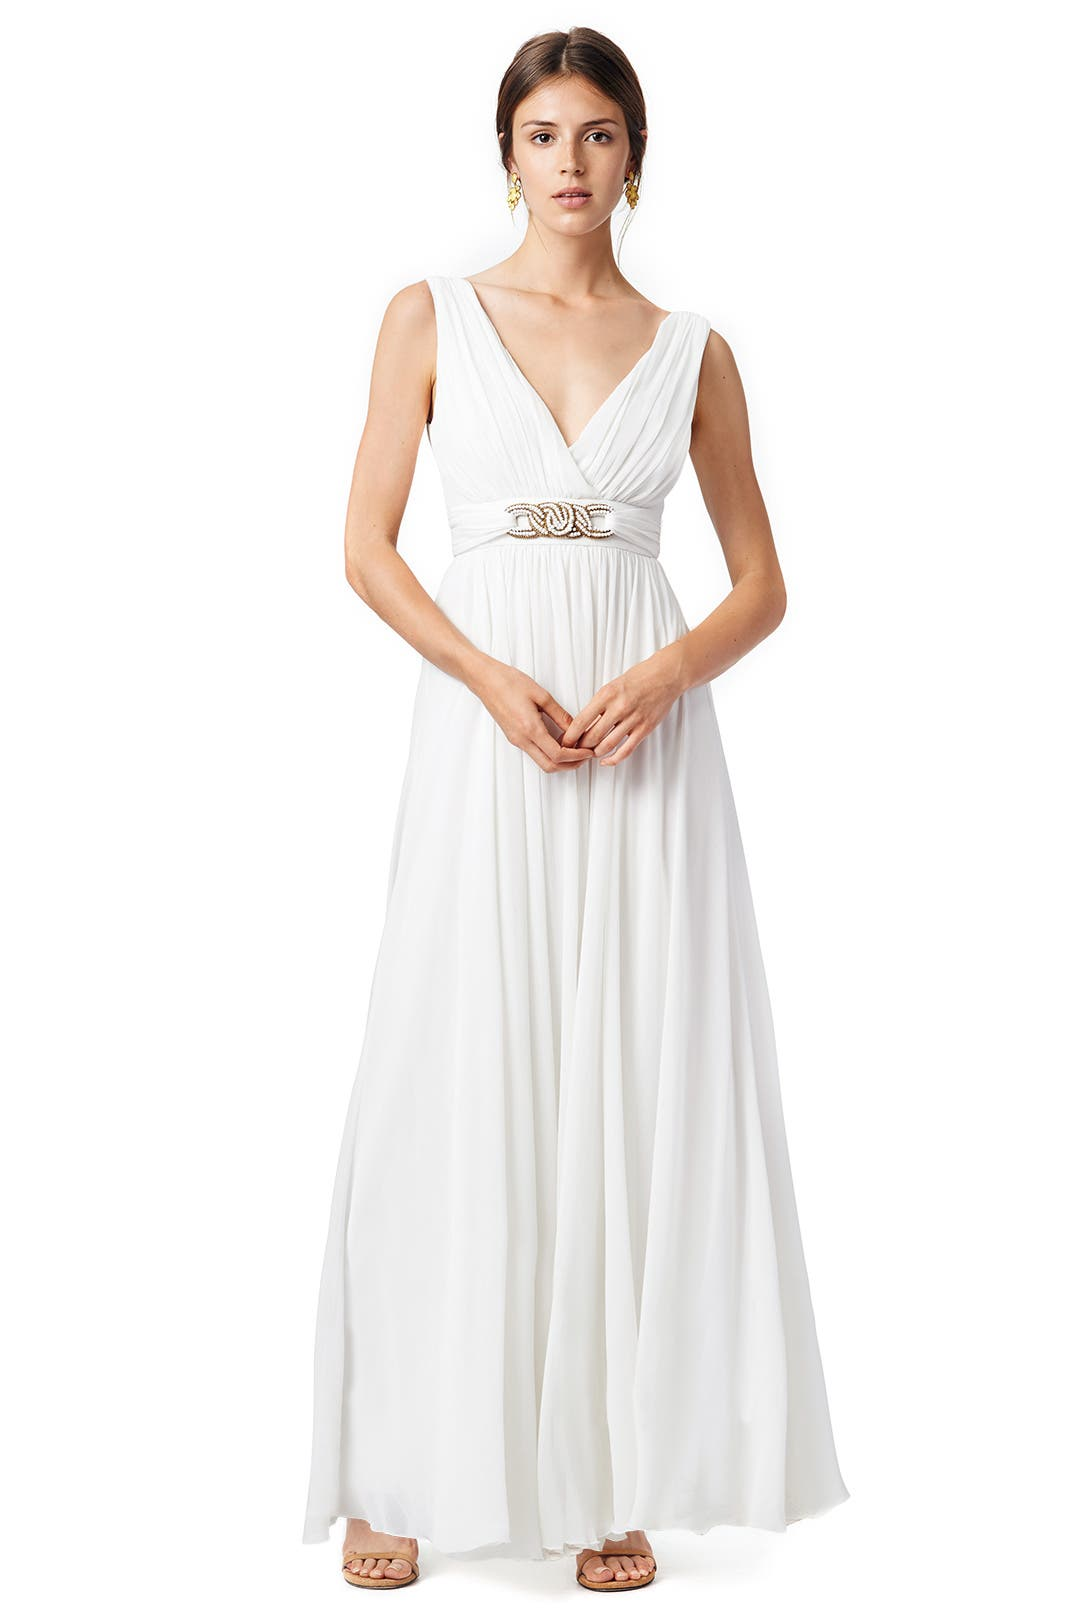 Antigua Bay Gown by Badgley Mischka